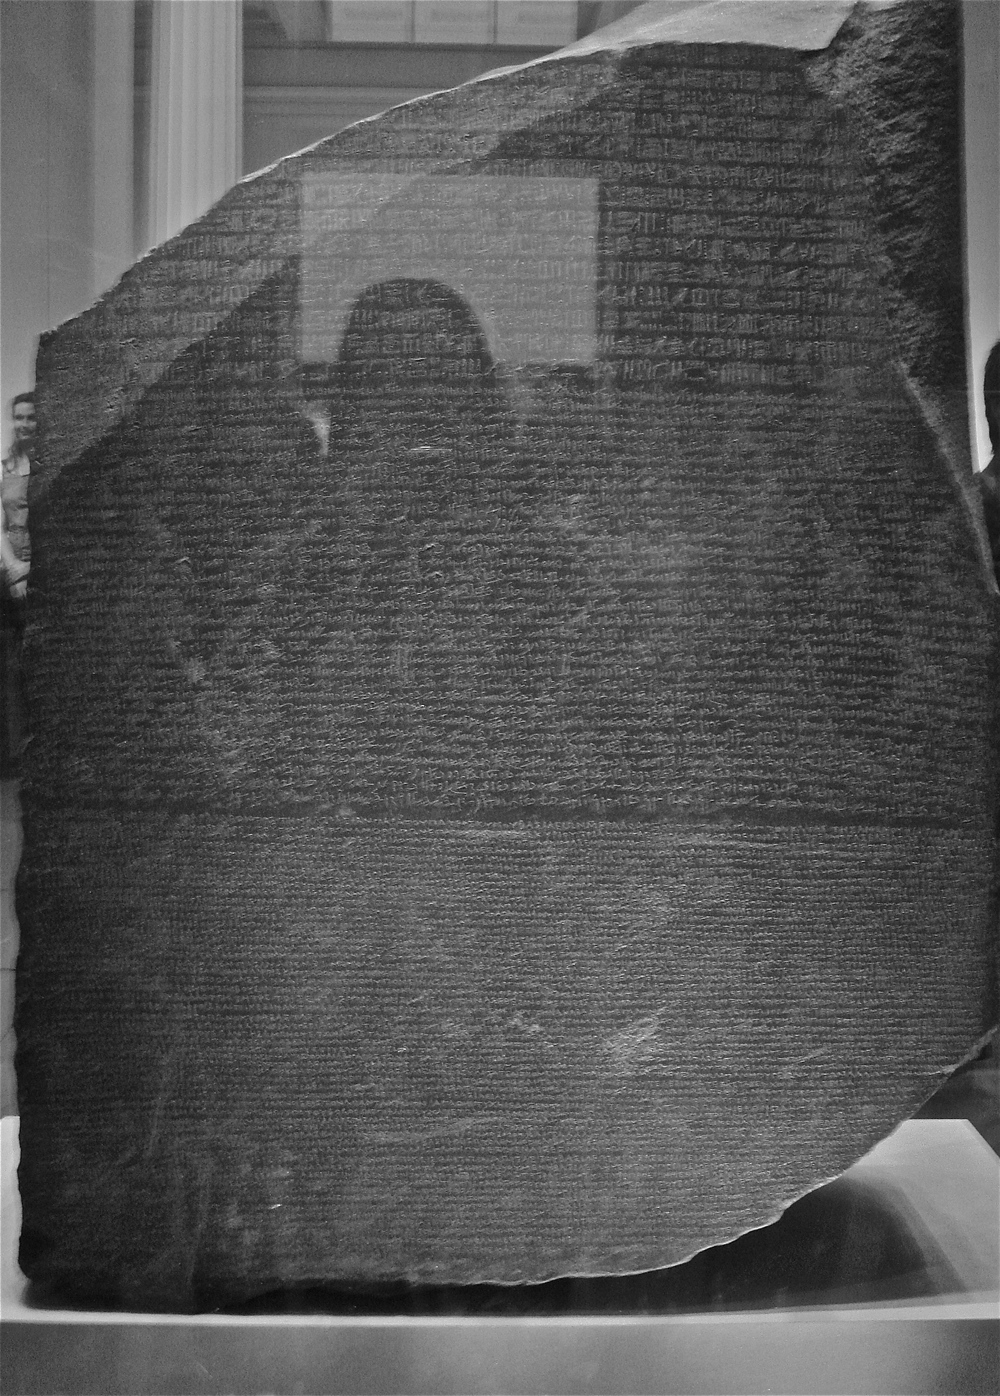 The Rosetta Stone British Museum, London